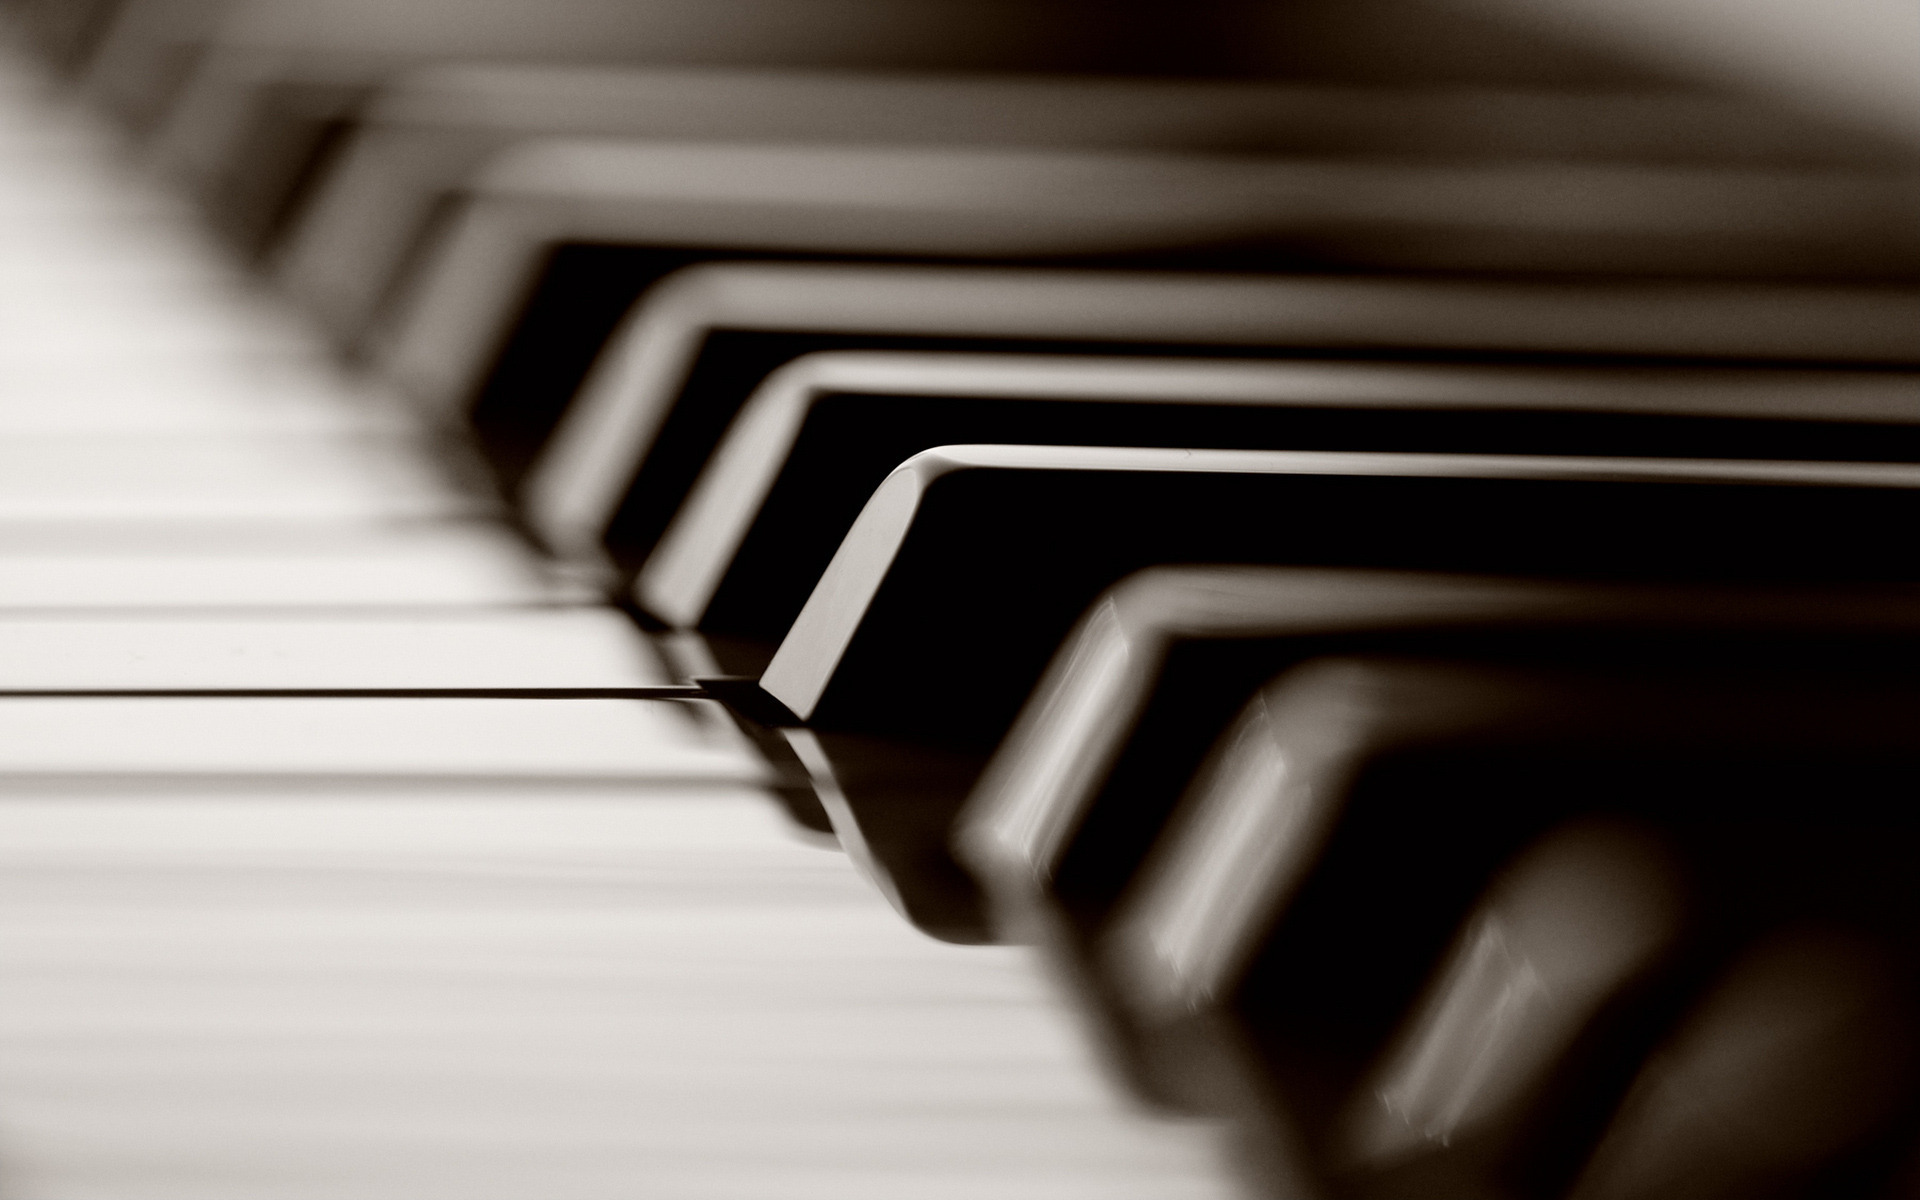 Piano Wallpapers High Quality | Download Free